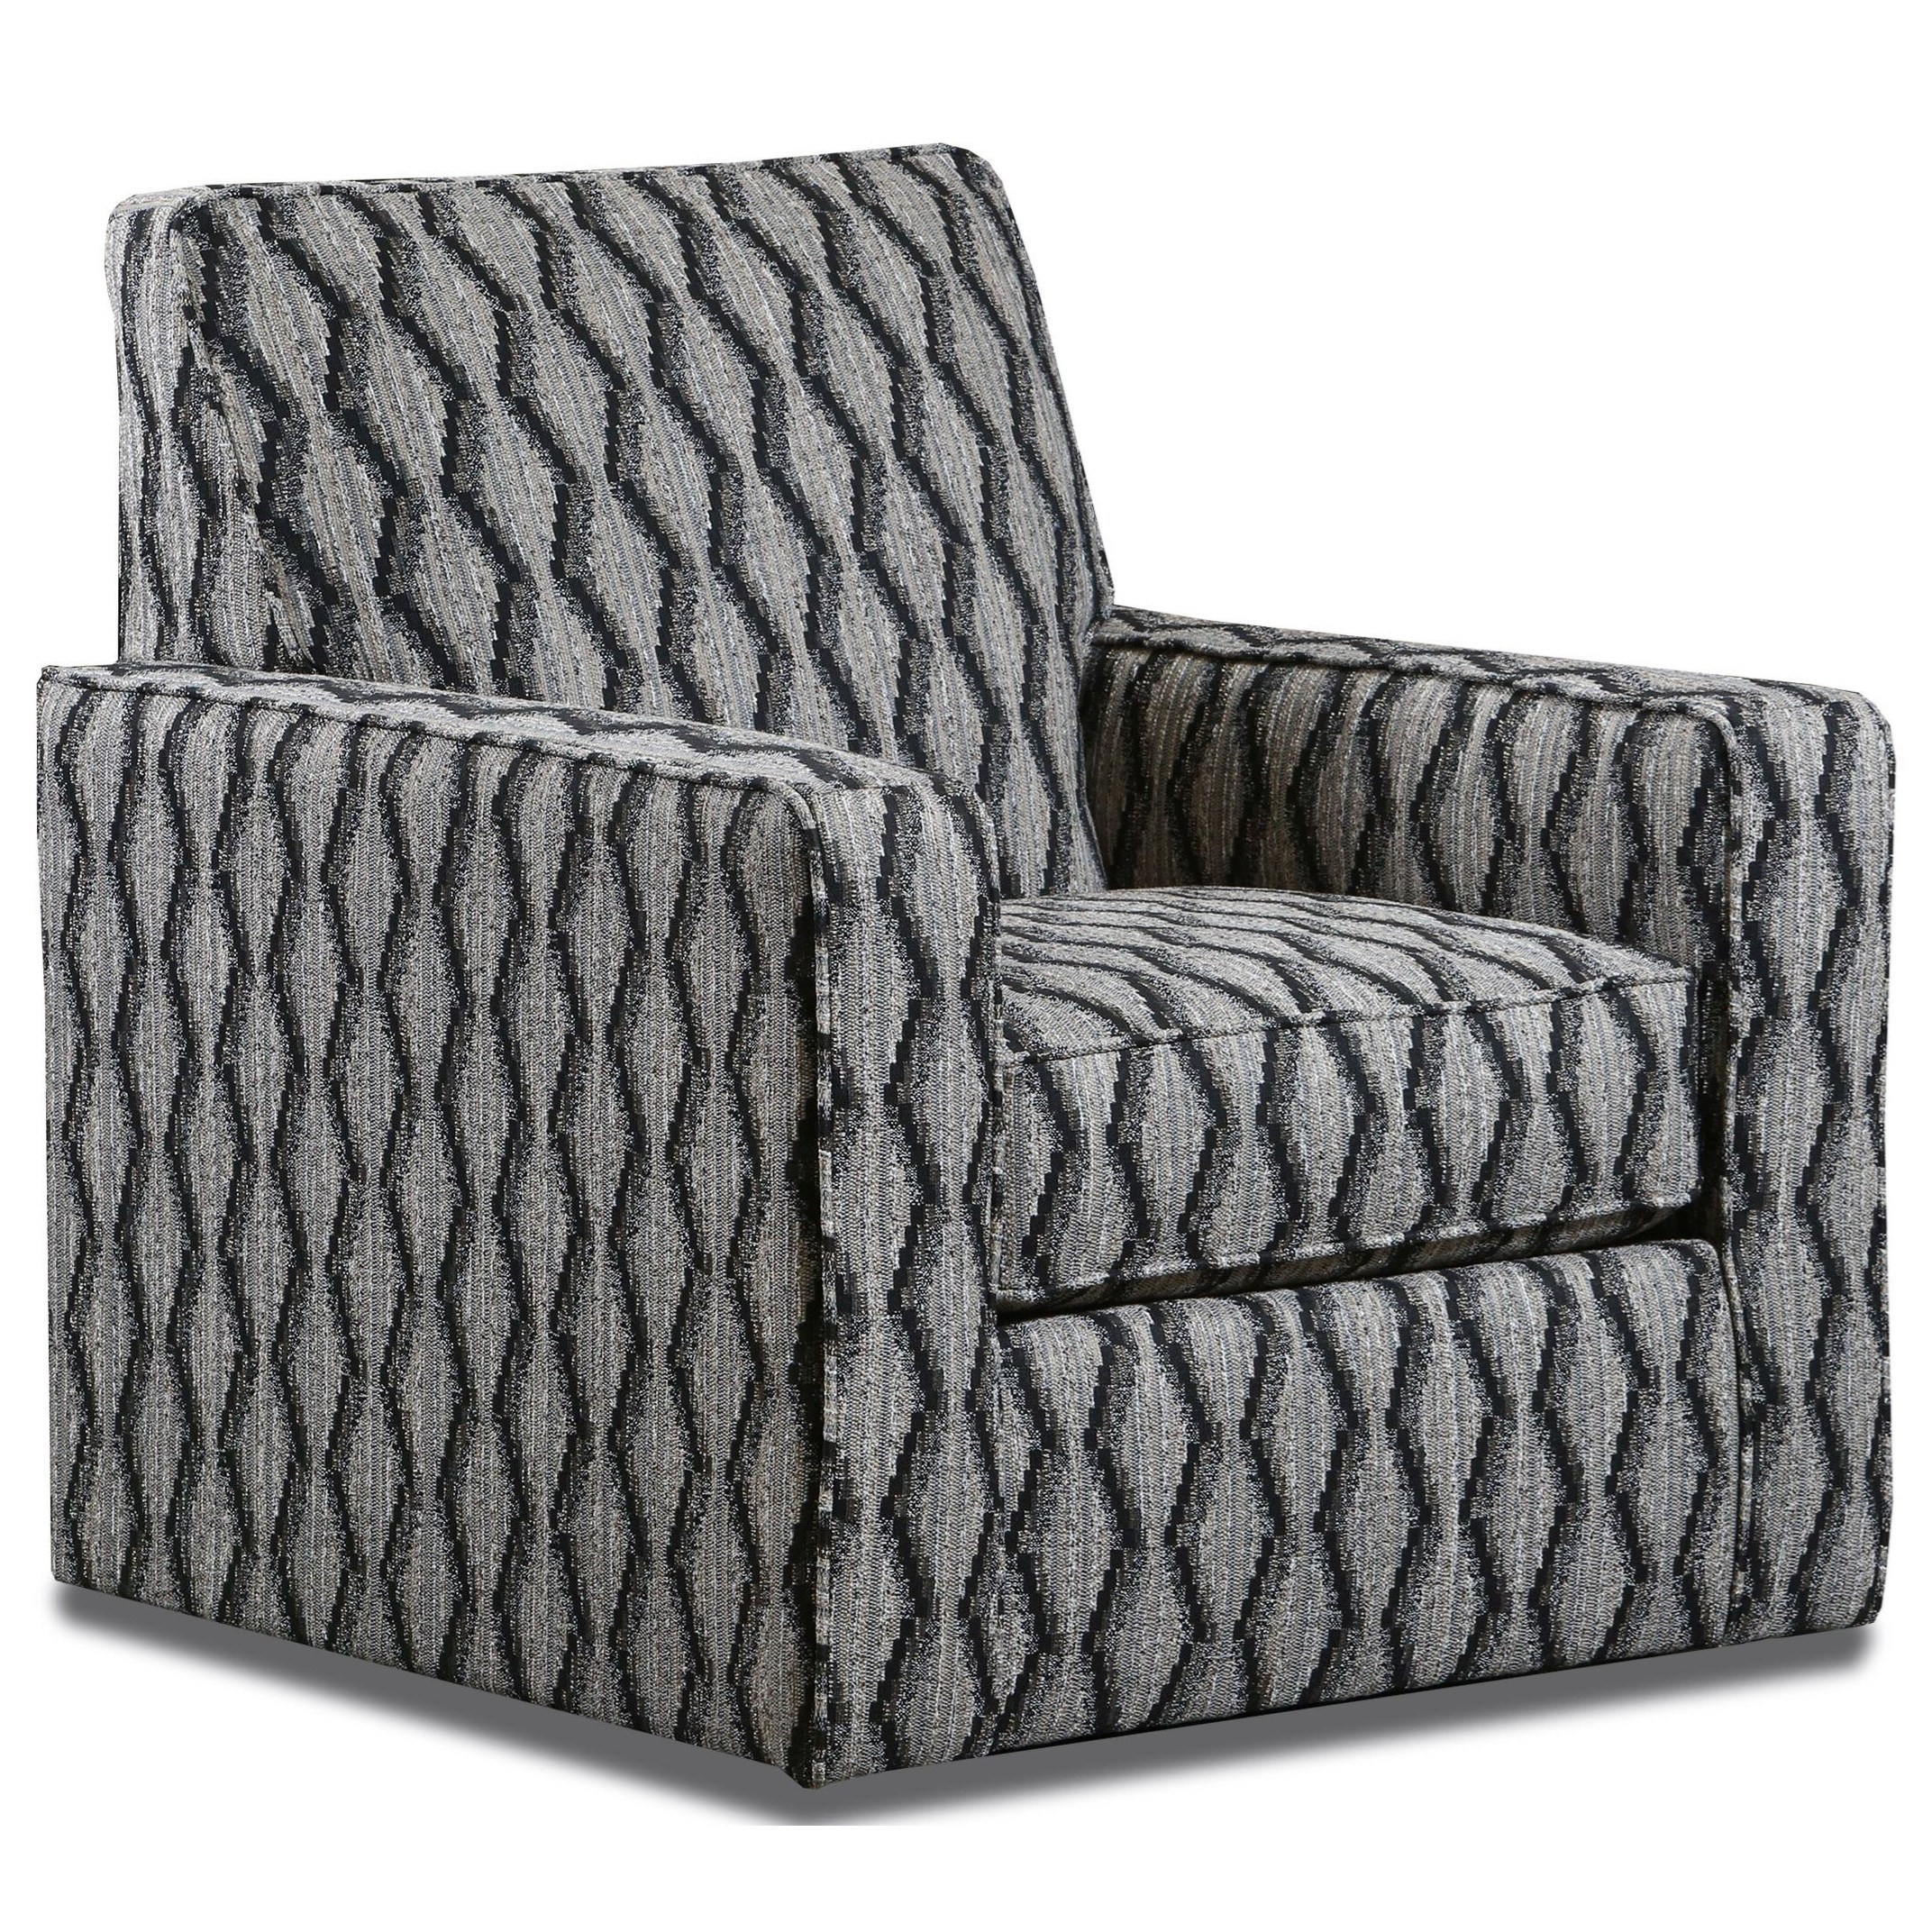 2600 Swivel Chair by Peak Living at Prime Brothers Furniture